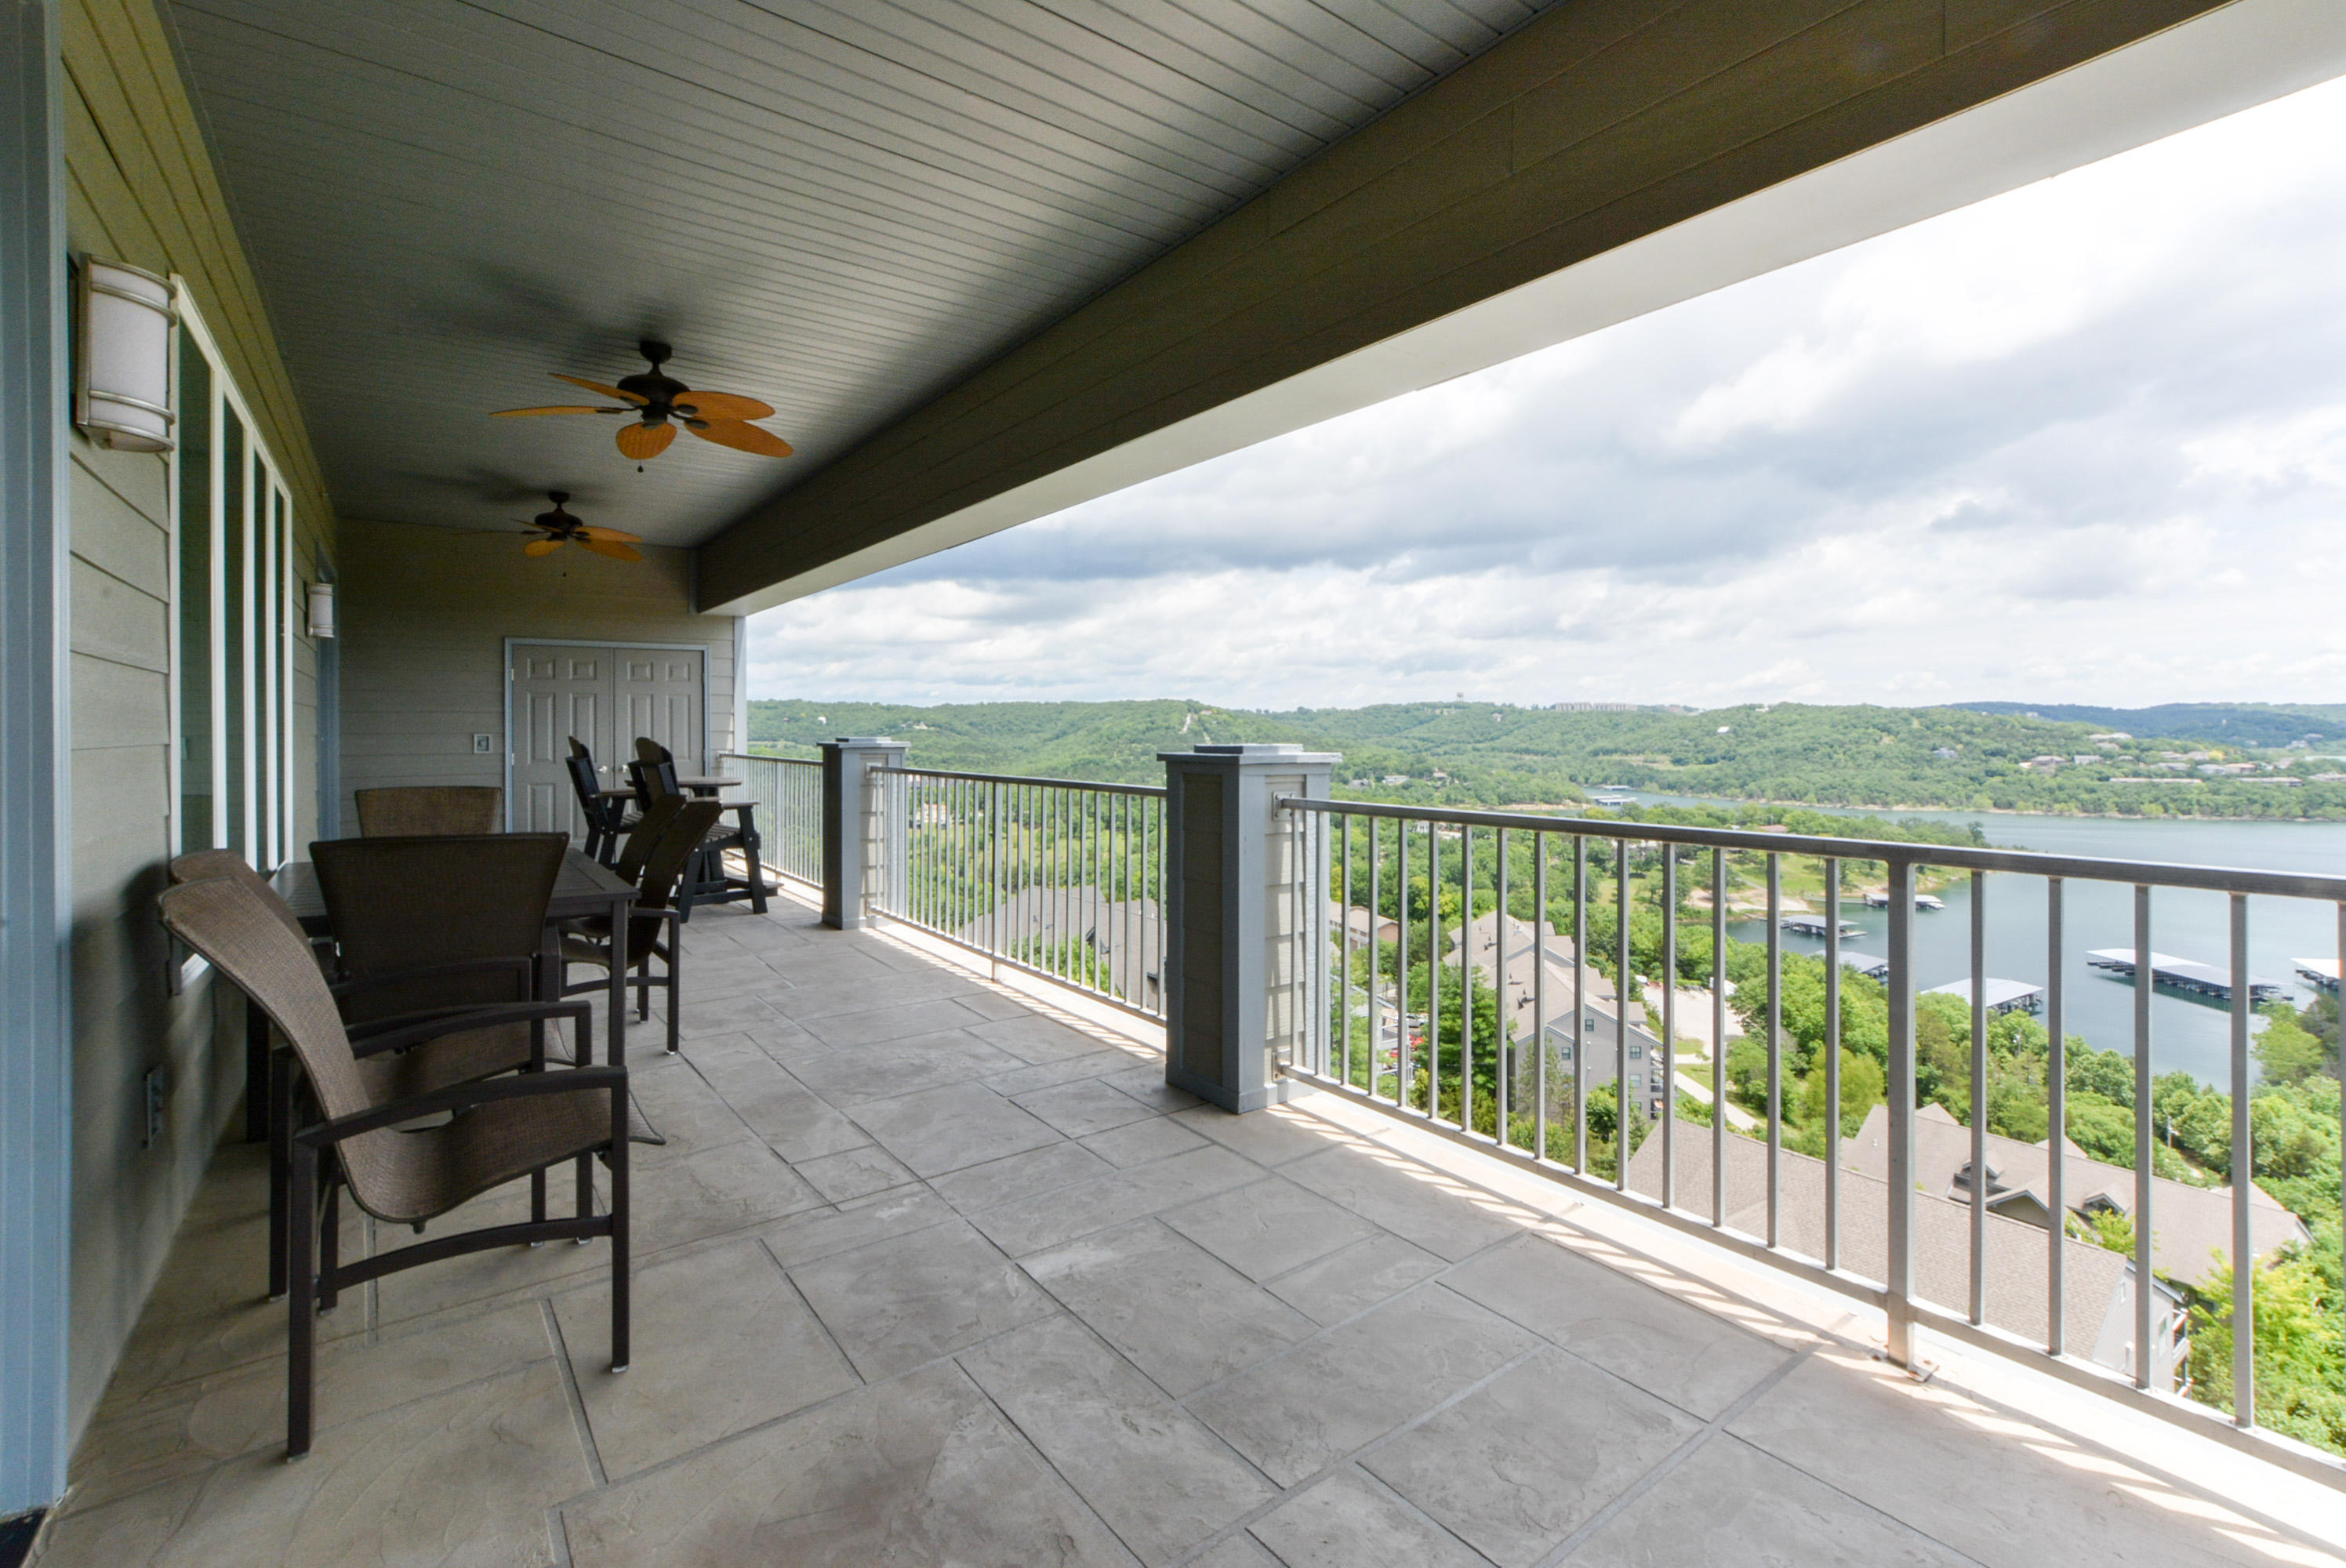 14 Treehouse Lane #24 Branson, MO 65616